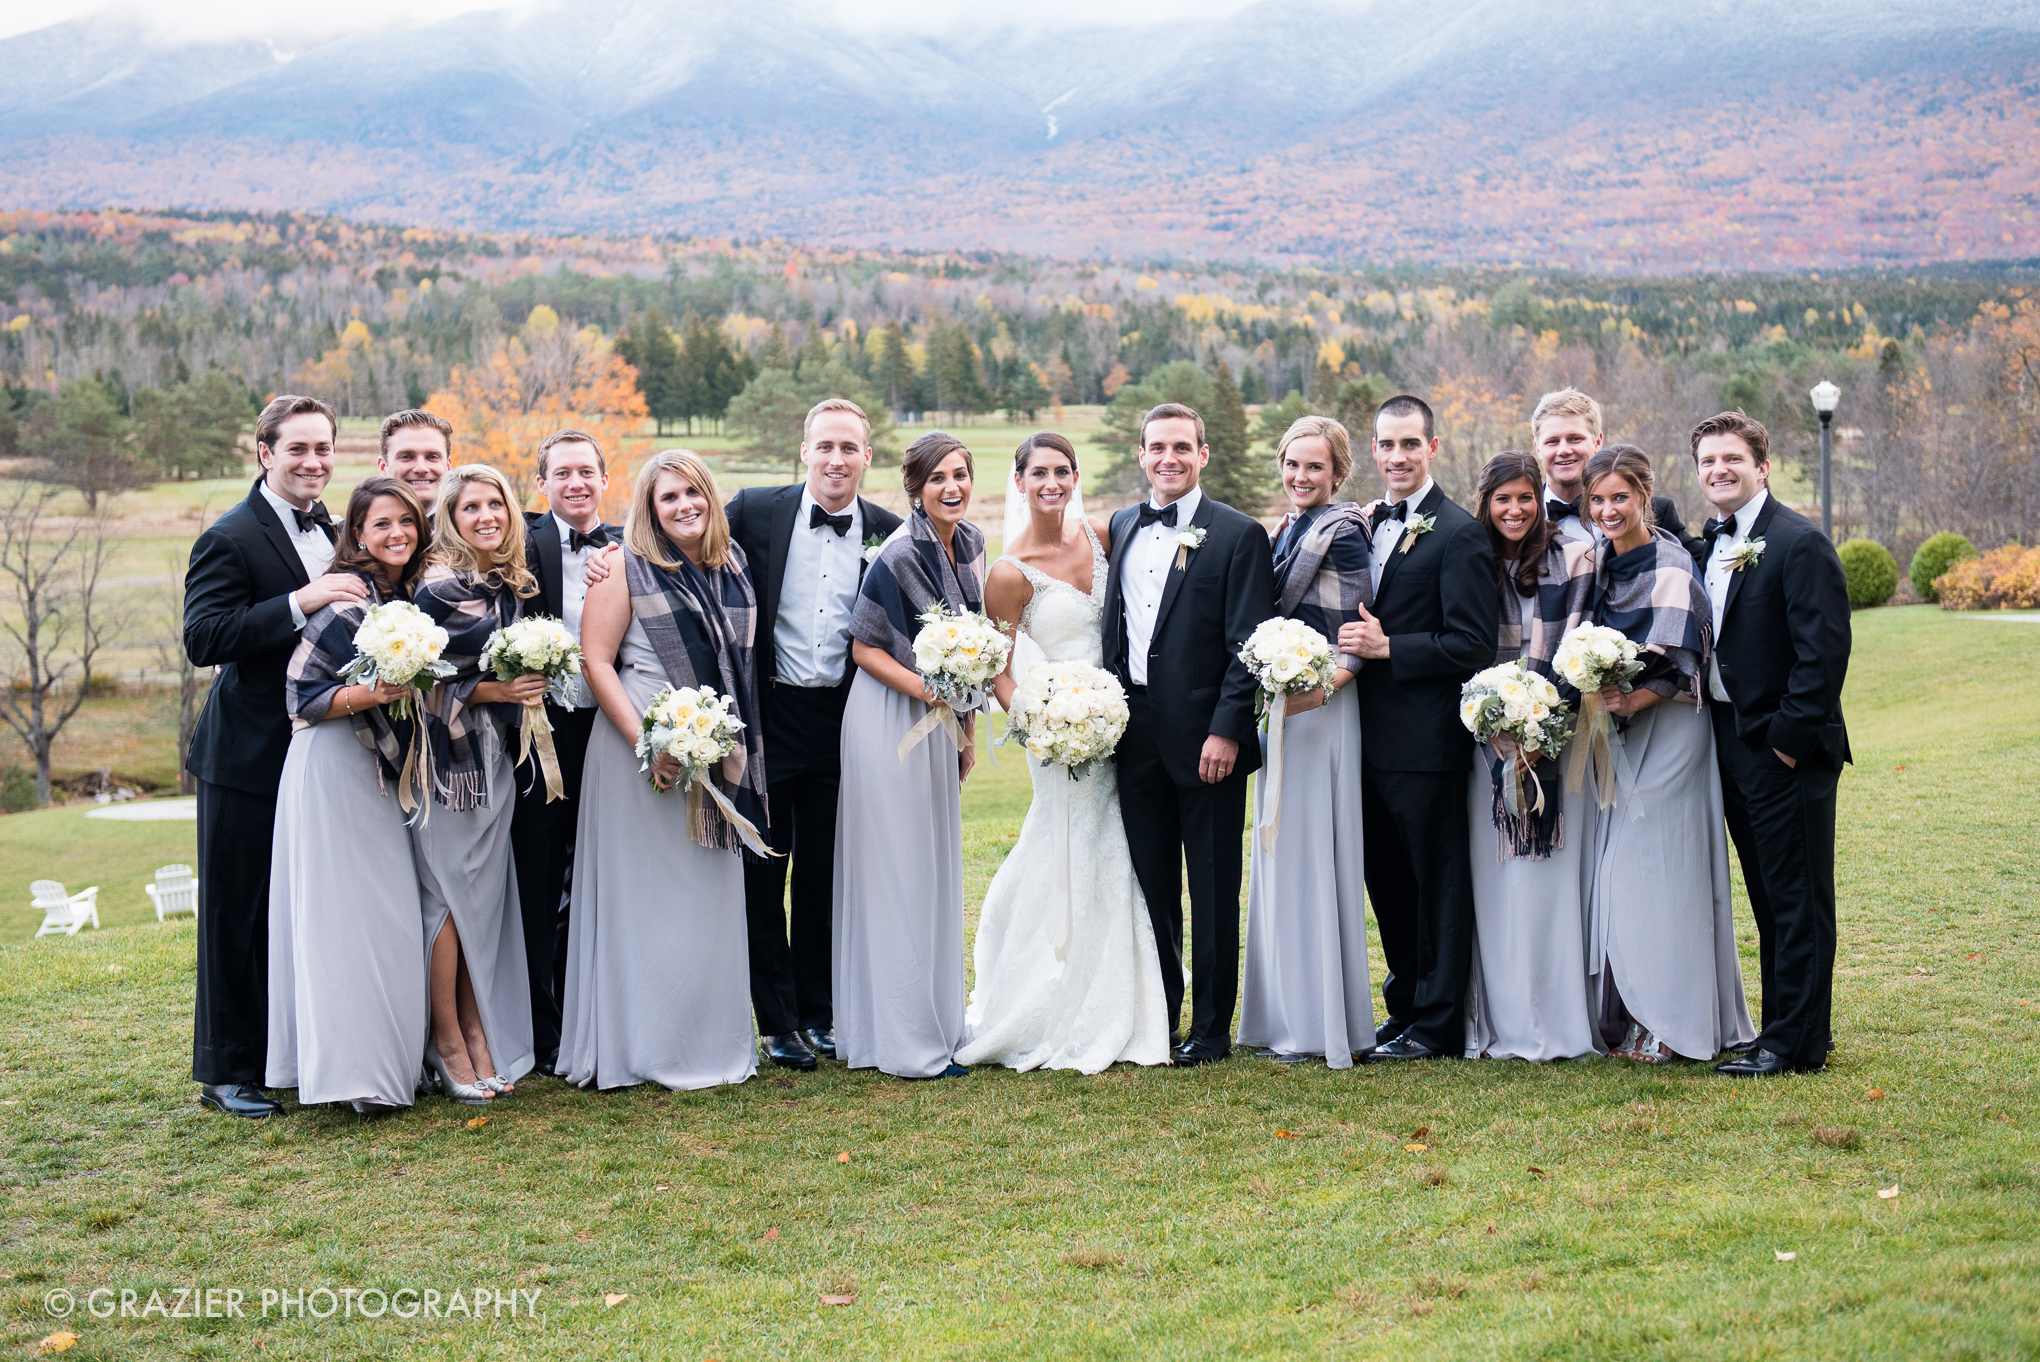 Grazier_Photography_Mount_Washington_Wedding_151017_412.jpg